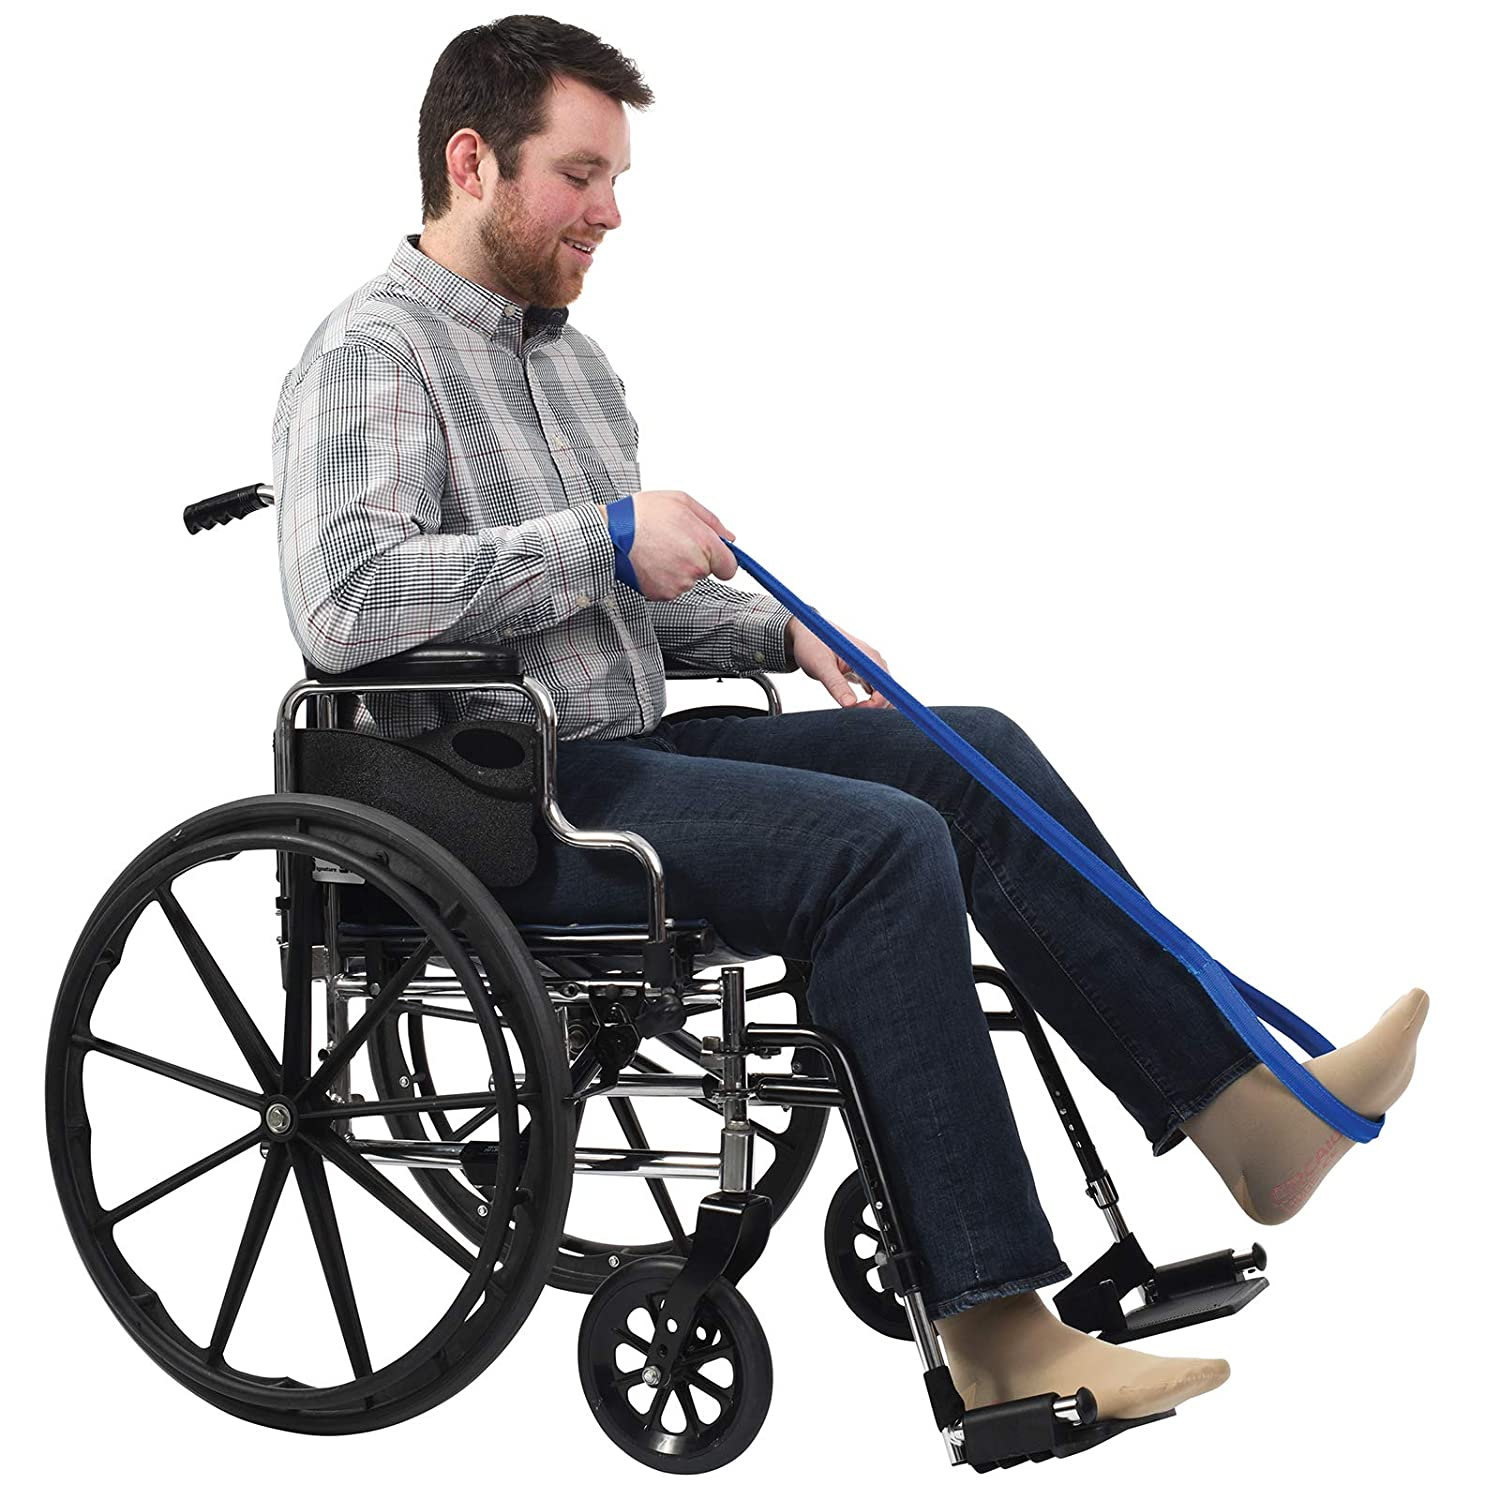 "Sammons Preston Rigid Leg Lifter, 41"" Leg Strap with Webbed Loops for Hand and Foot, Easy to Use Leg Lift Assist & Riser for Getting in & Out of Beds, Cars, Wheelchairs: Industrial & Scientific"